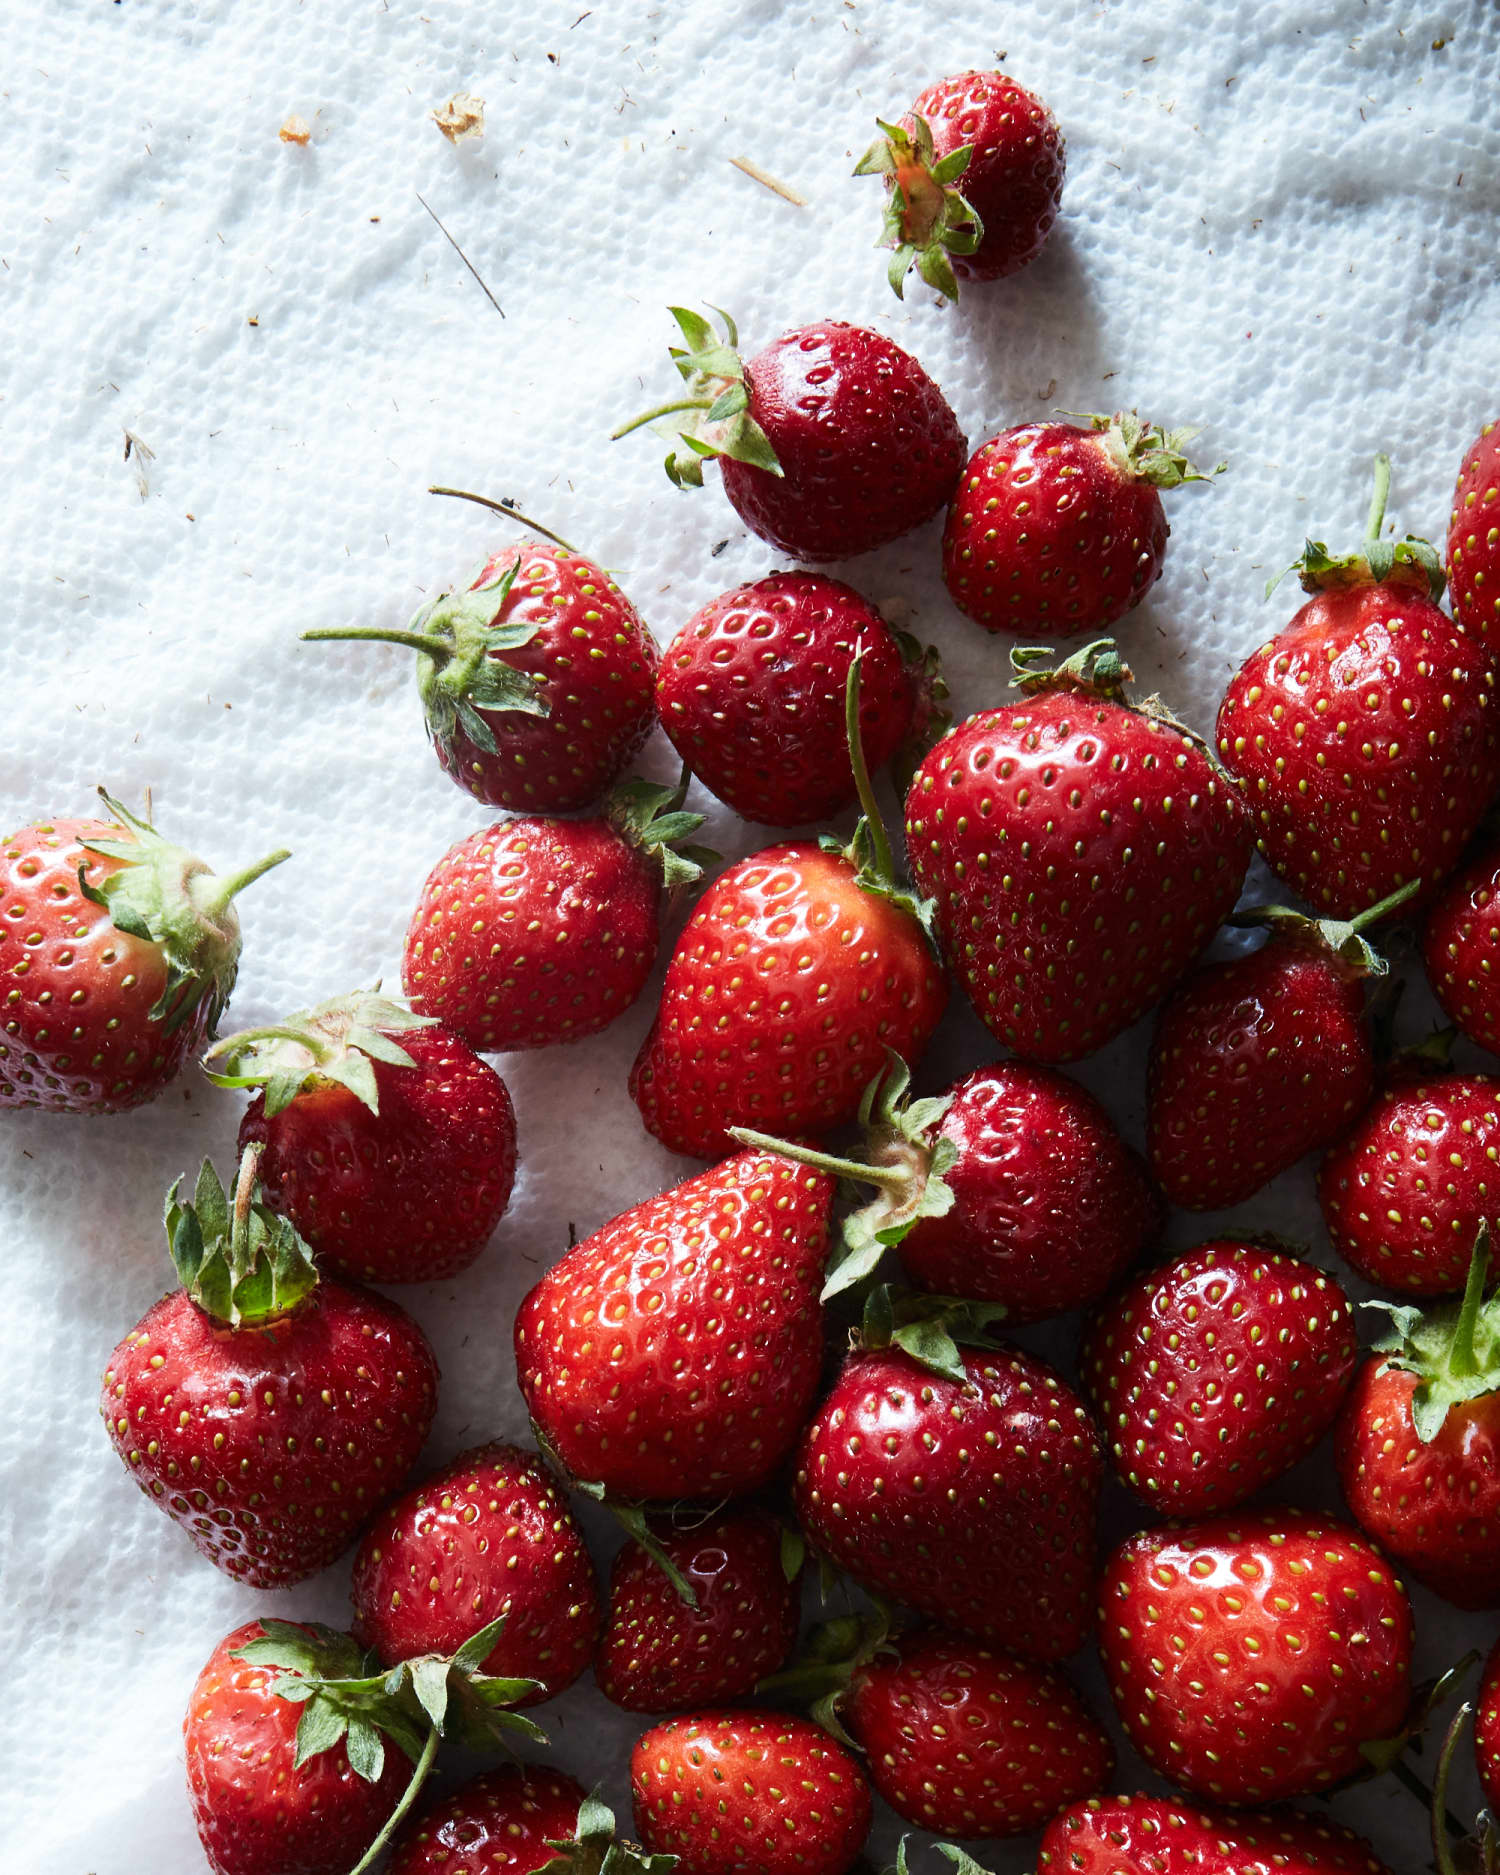 The Simple, Ingenious Trick That Makes Any Box of Strawberries Taste Amazing